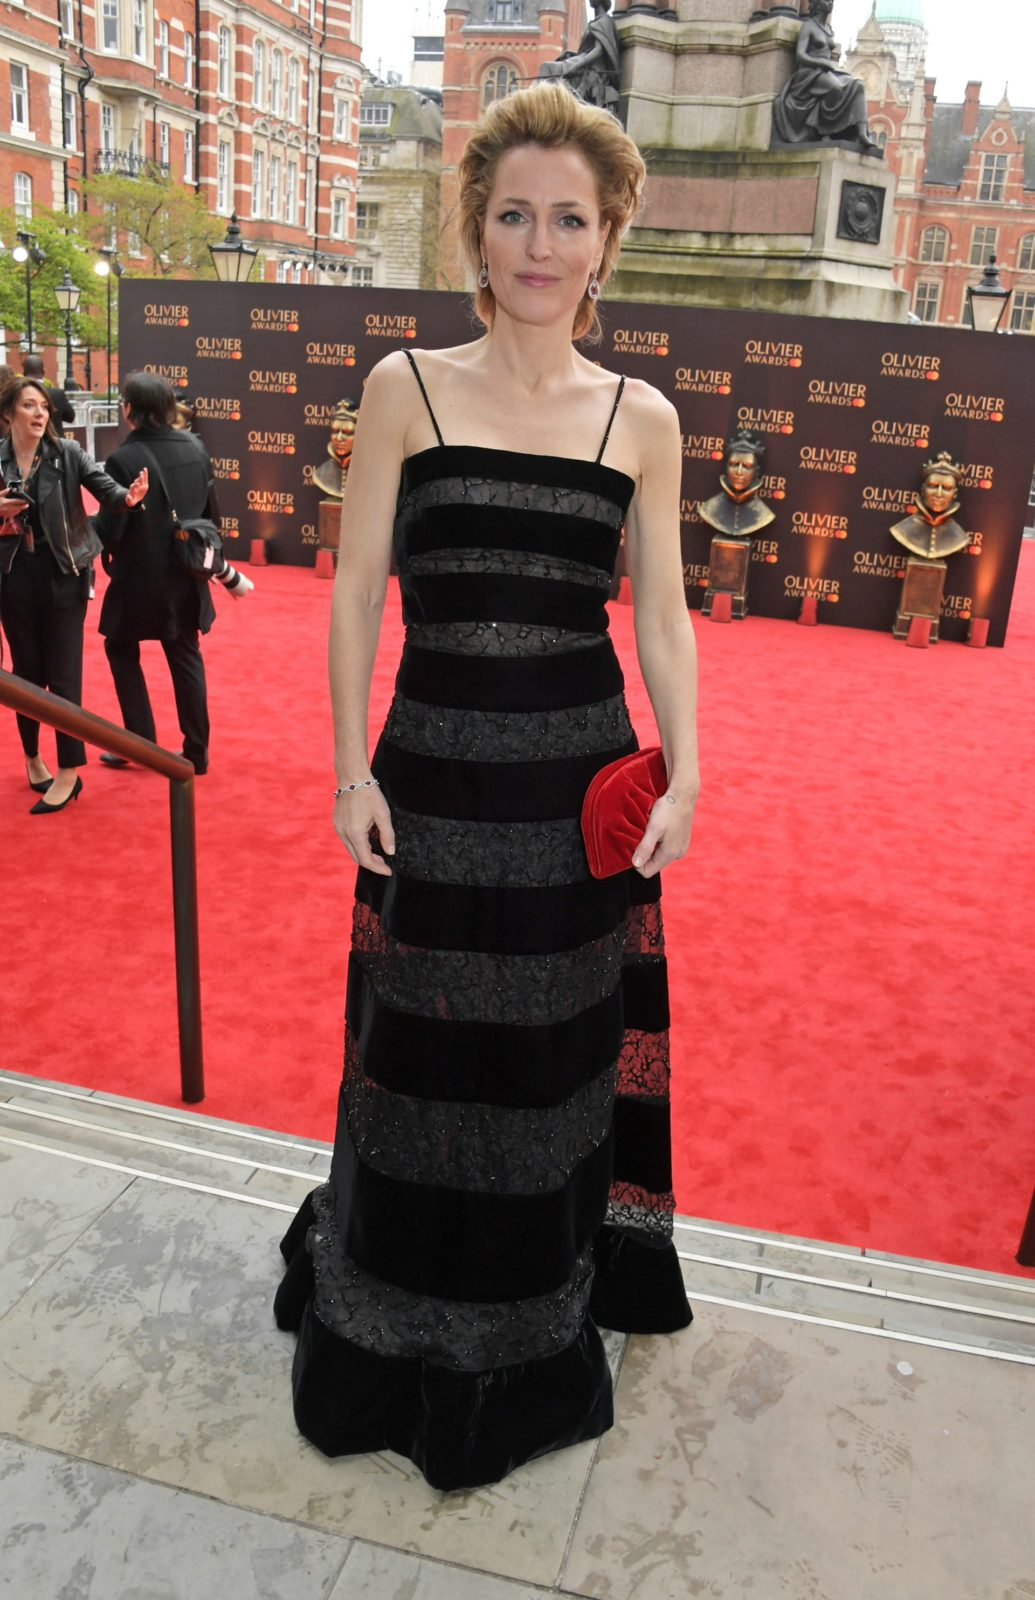 Gillian Anderson dazzled in a fitted floor-length black gown. Source: Getty